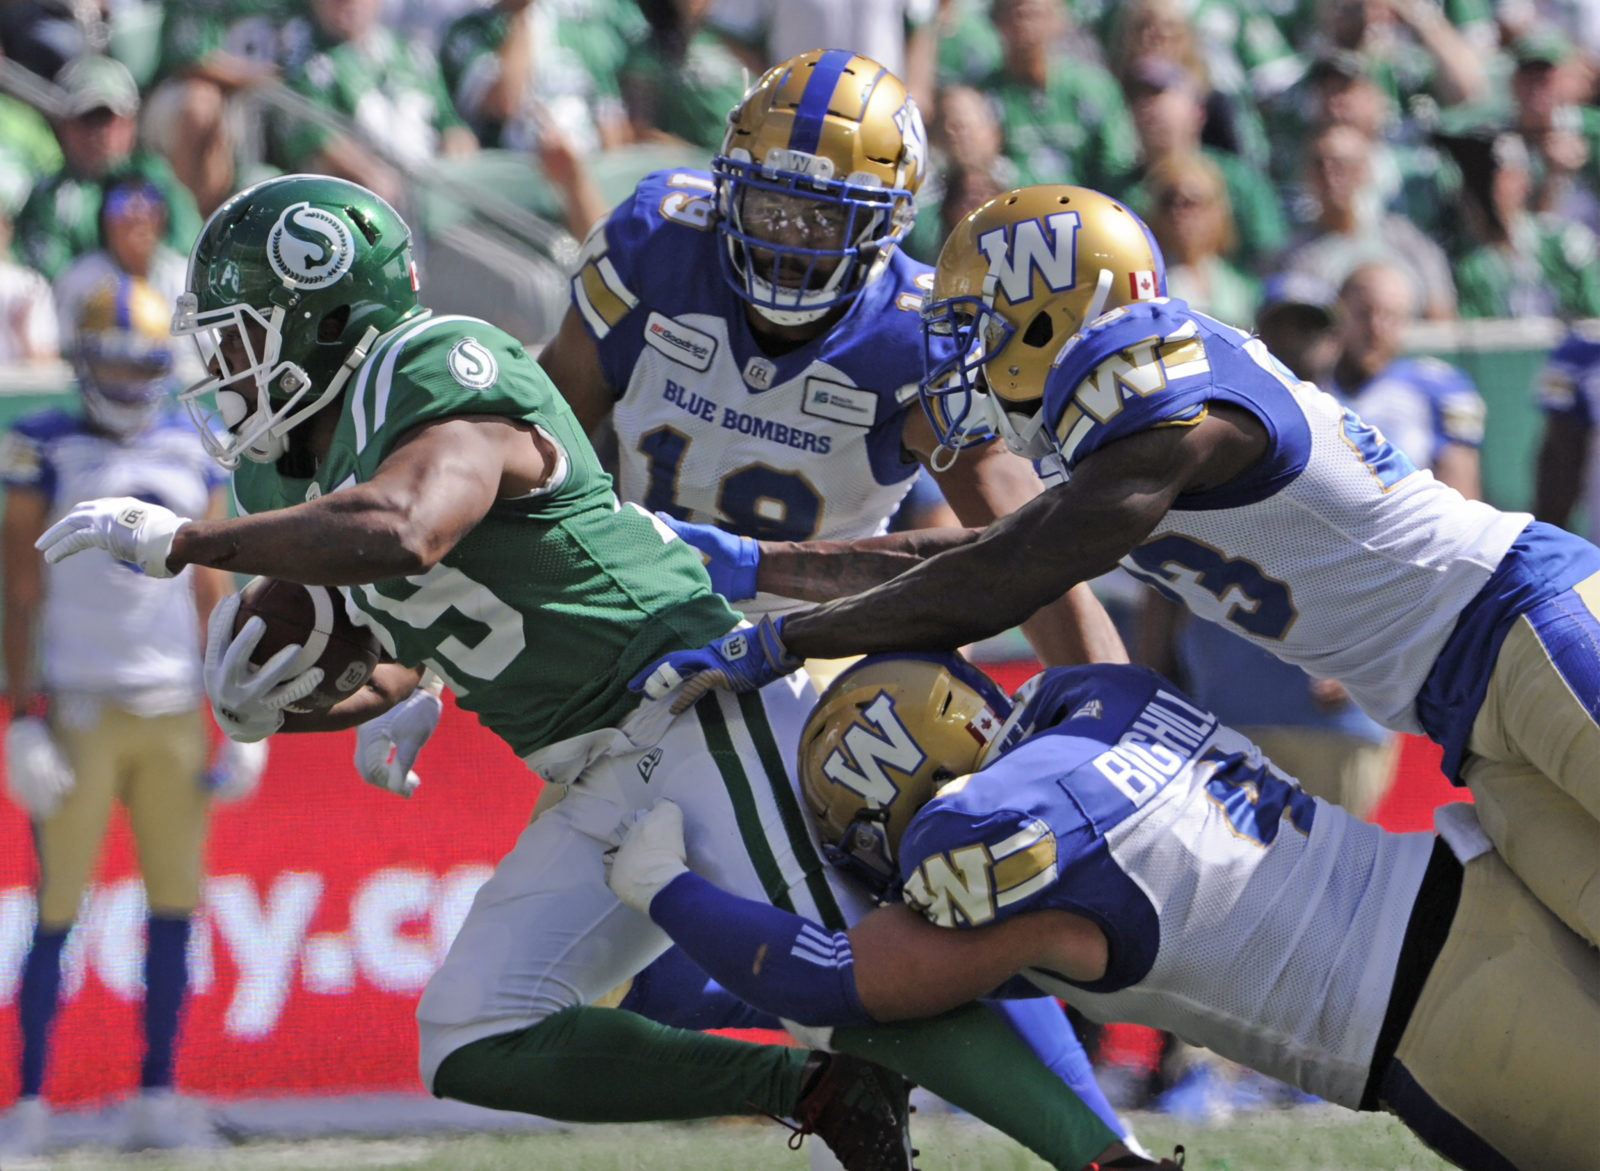 Upon Further Review | WPG 17 SSK 19 - Winnipeg Blue Bombers